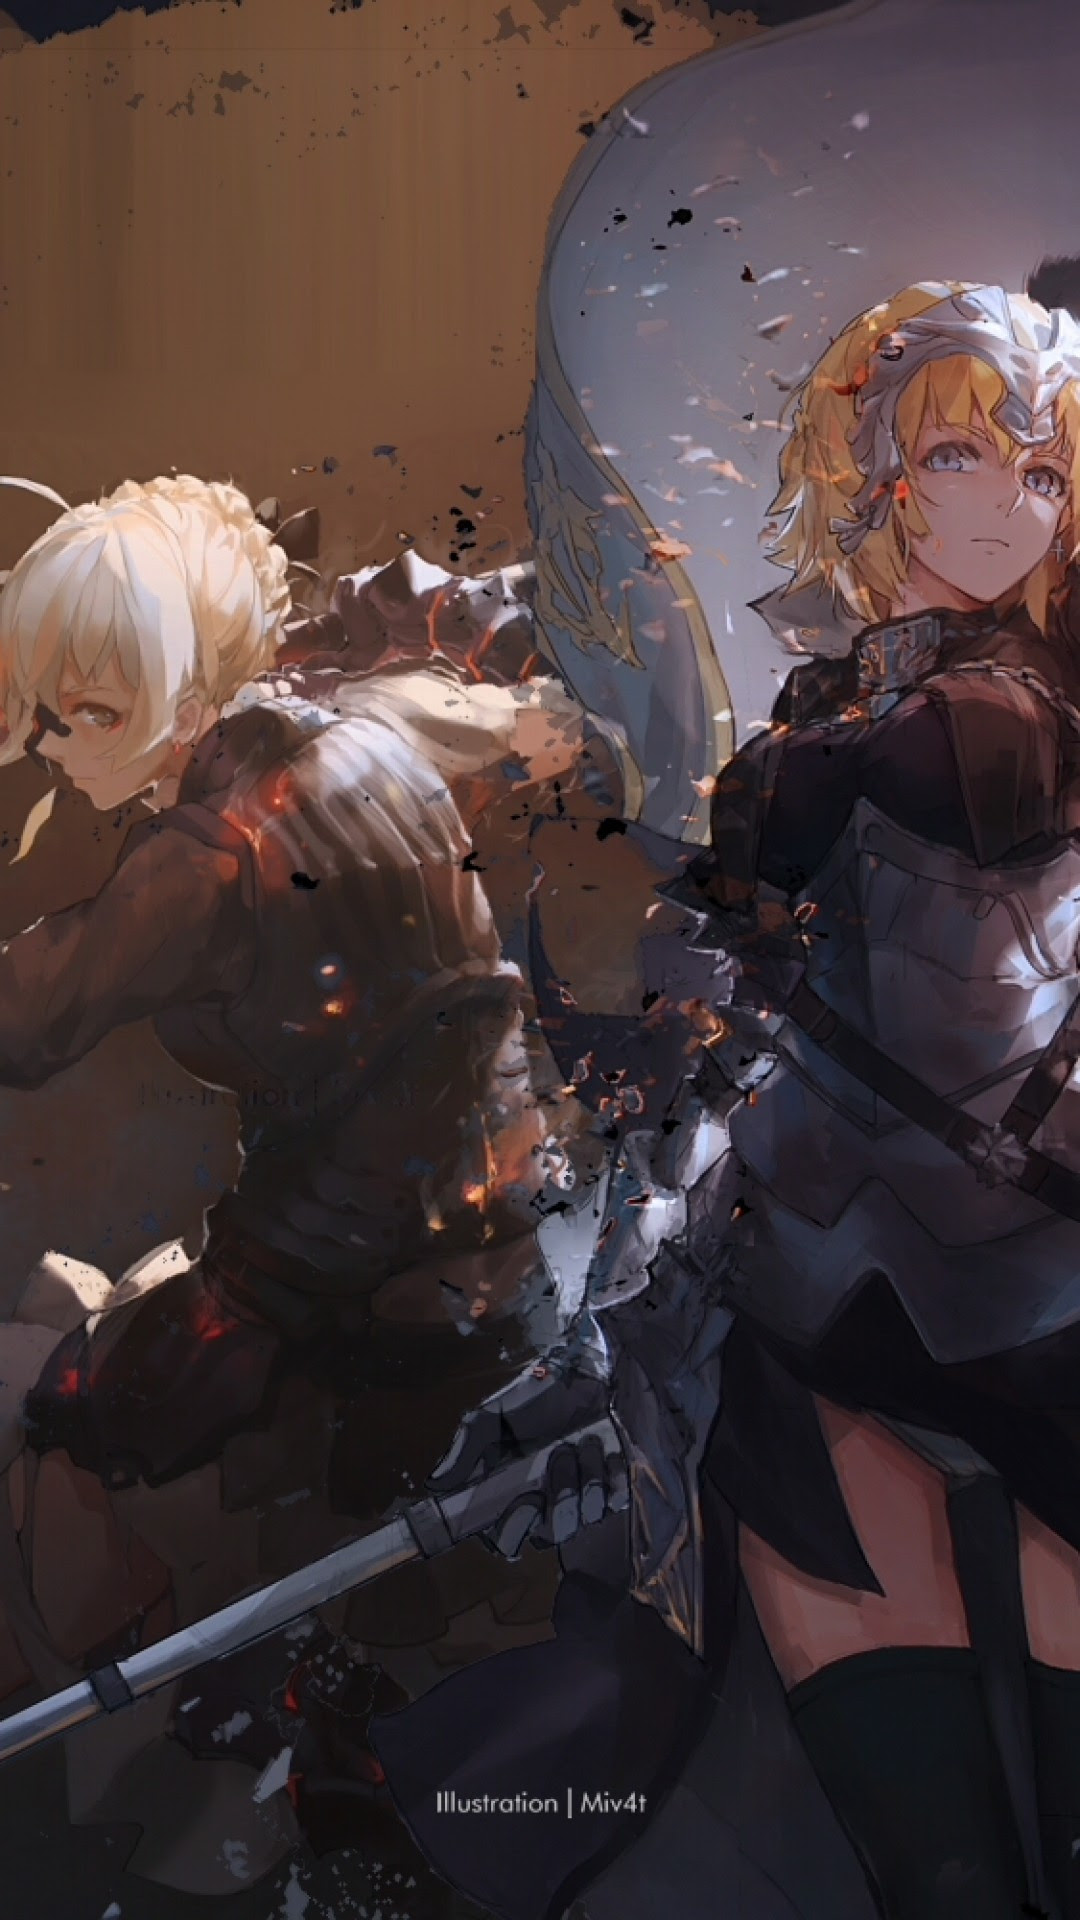 Download 1080x1920 Fate Stay Night, Saber, Armored, Ruler ...